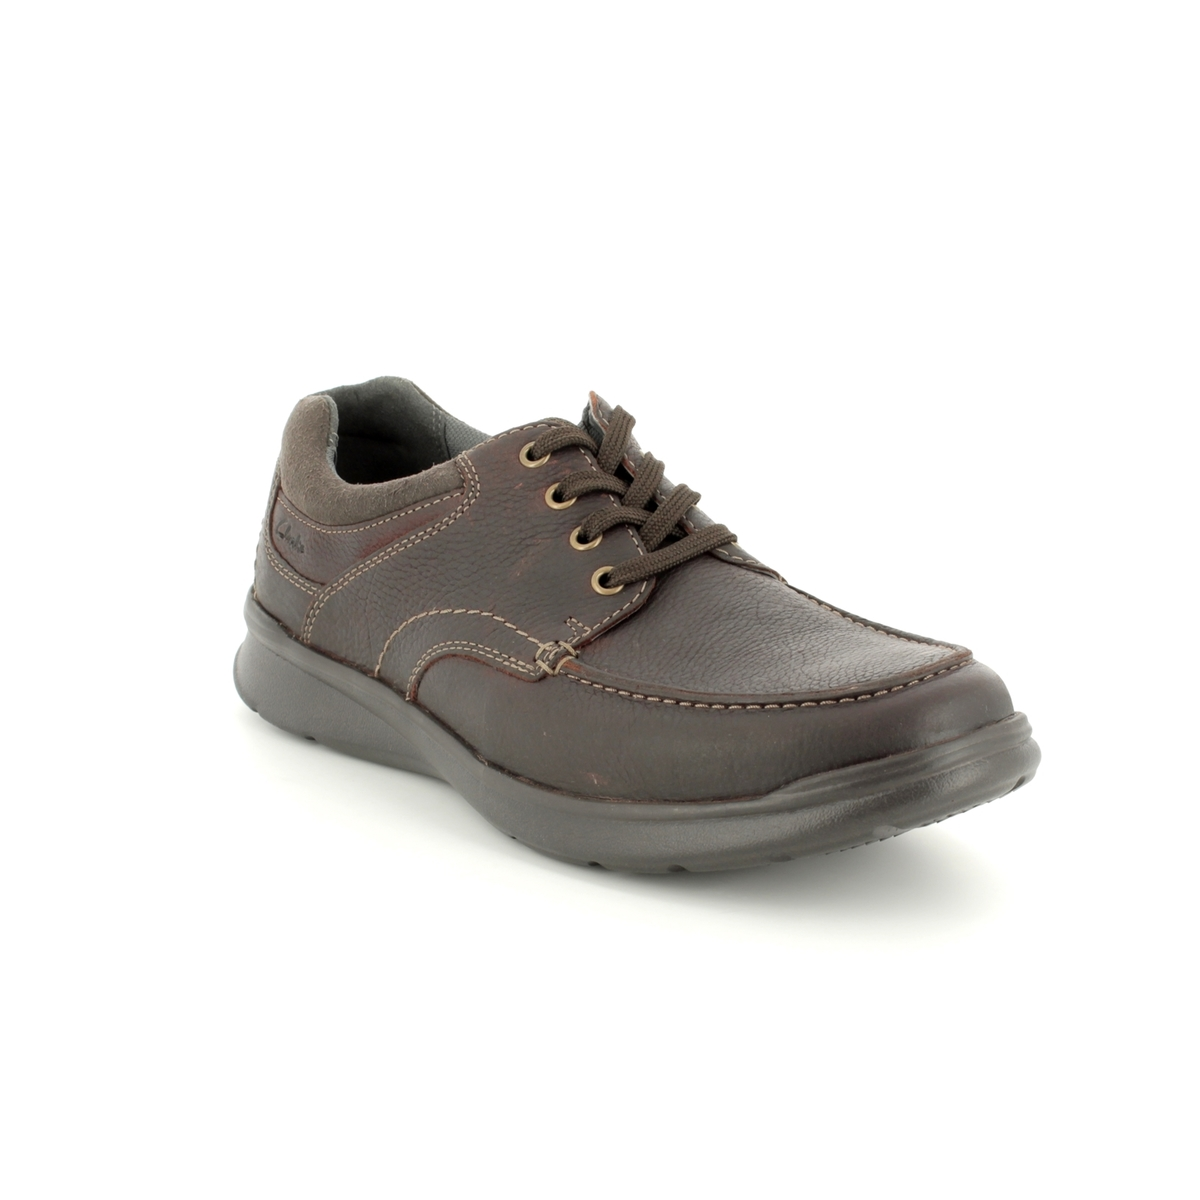 988107ded78 Clarks Casual Shoes - Brown - 1980 38H COTRELL EDGE